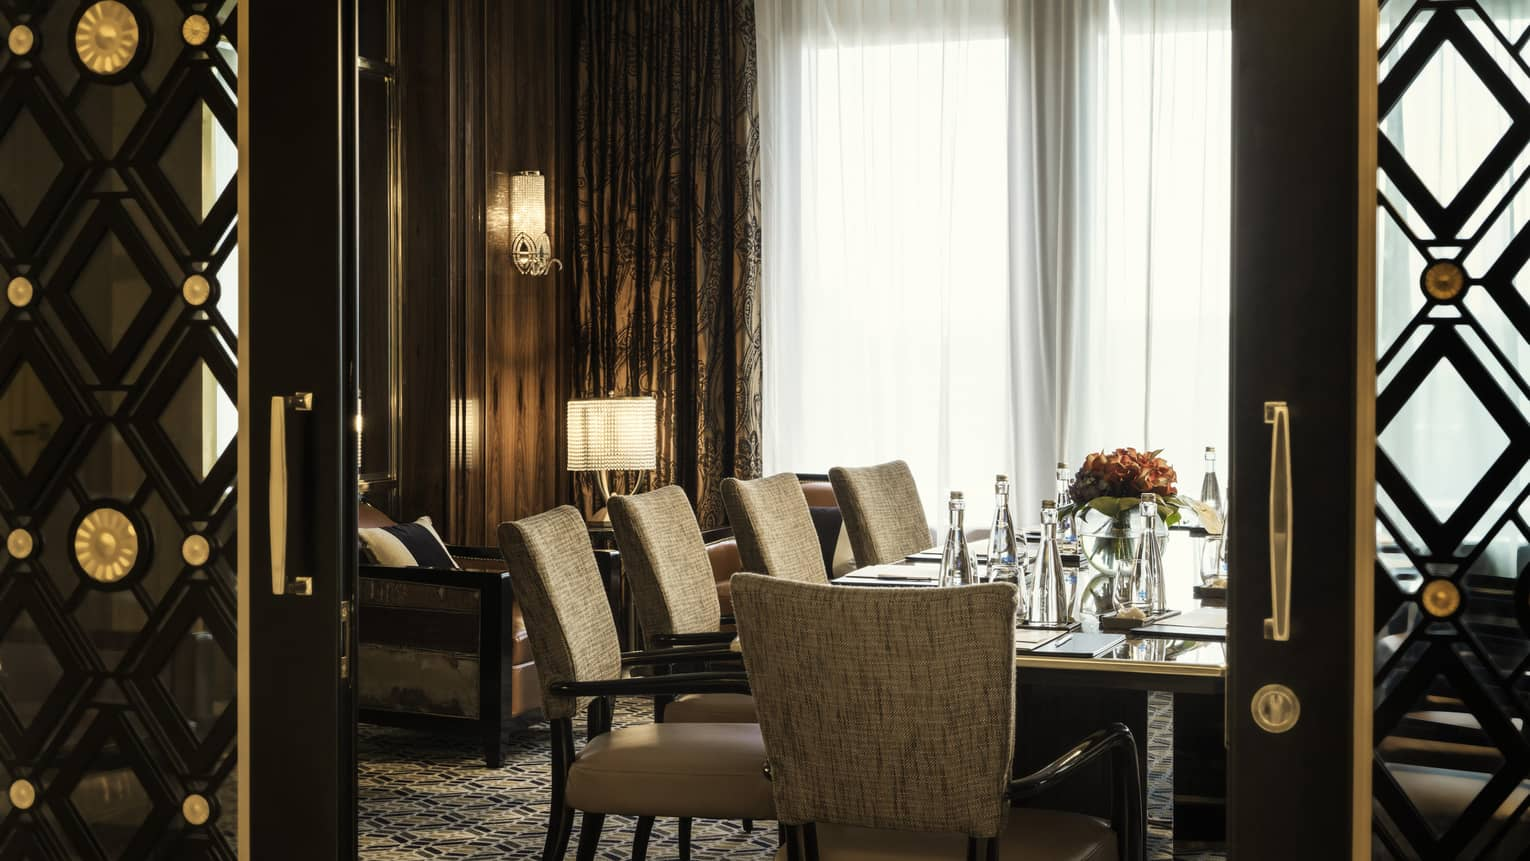 Four Seasons Hotel Jakarta's Salon 2 dining room for private dining